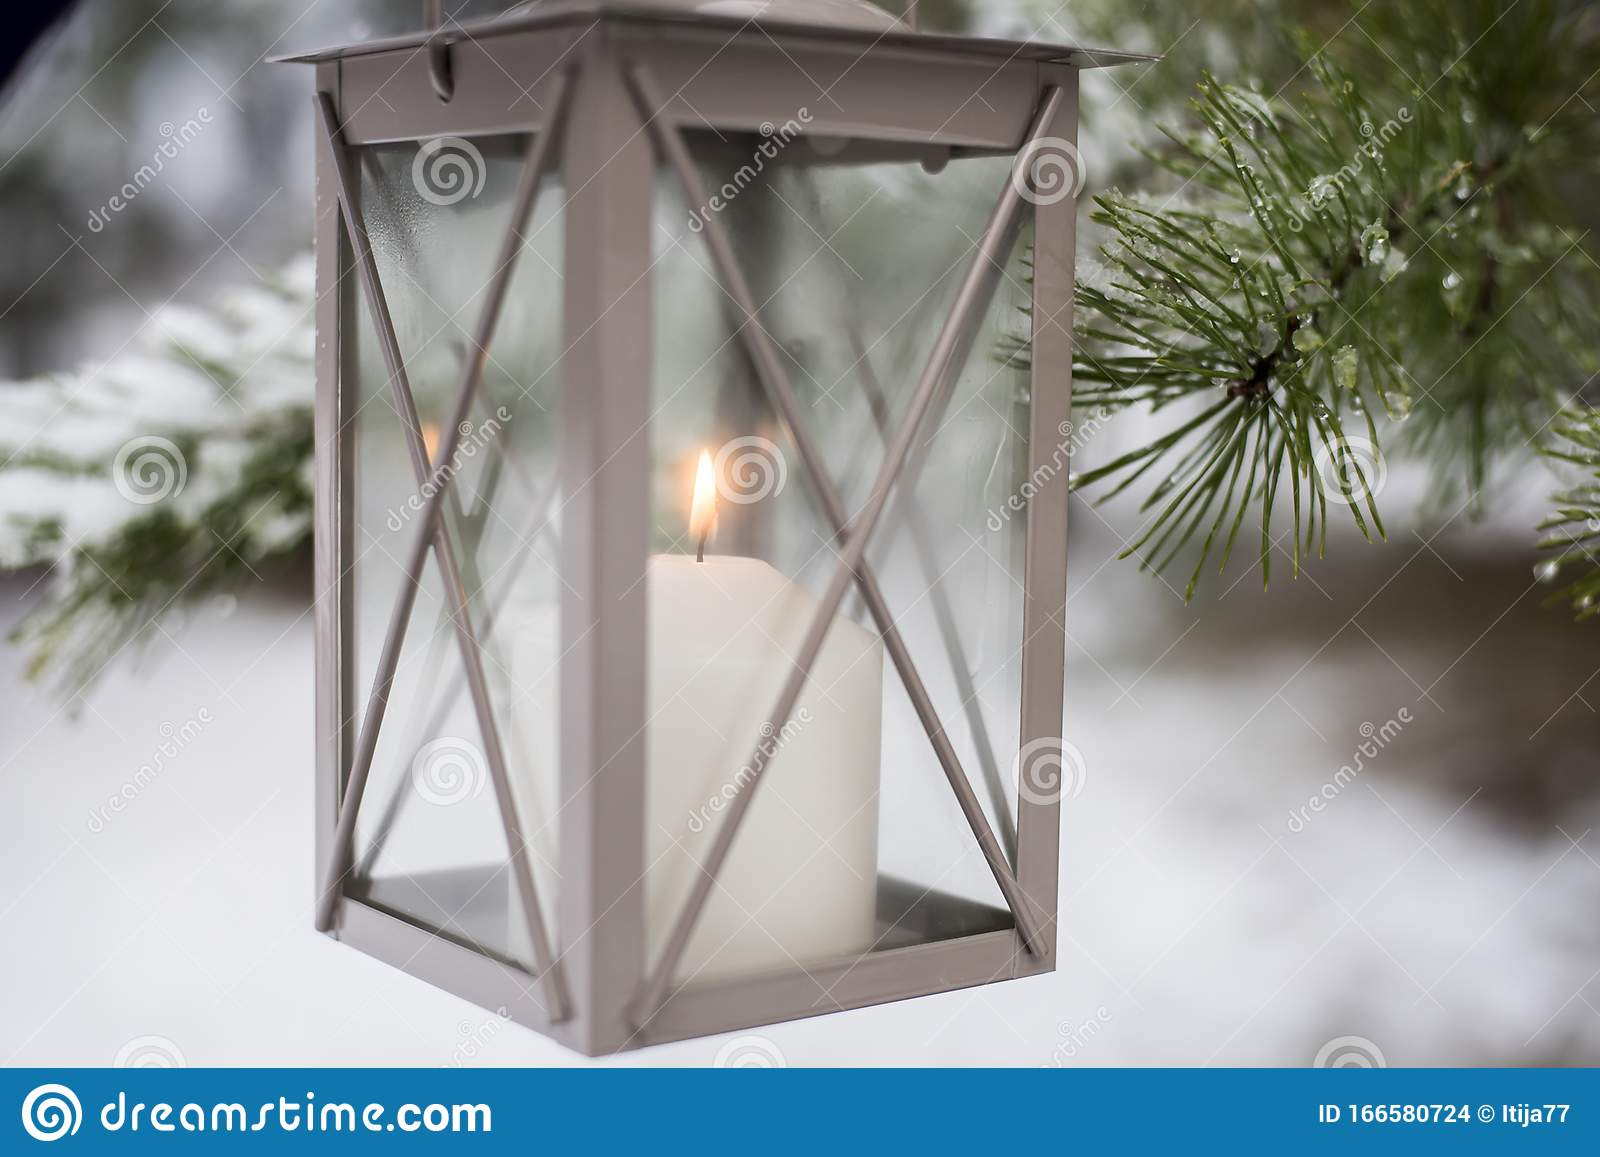 Christmas Mood With Outdoor Candle Holder With Burning Candle And Green Branches Covered With Snow On Background Stock Photo Image Of Rustic Season 166580724